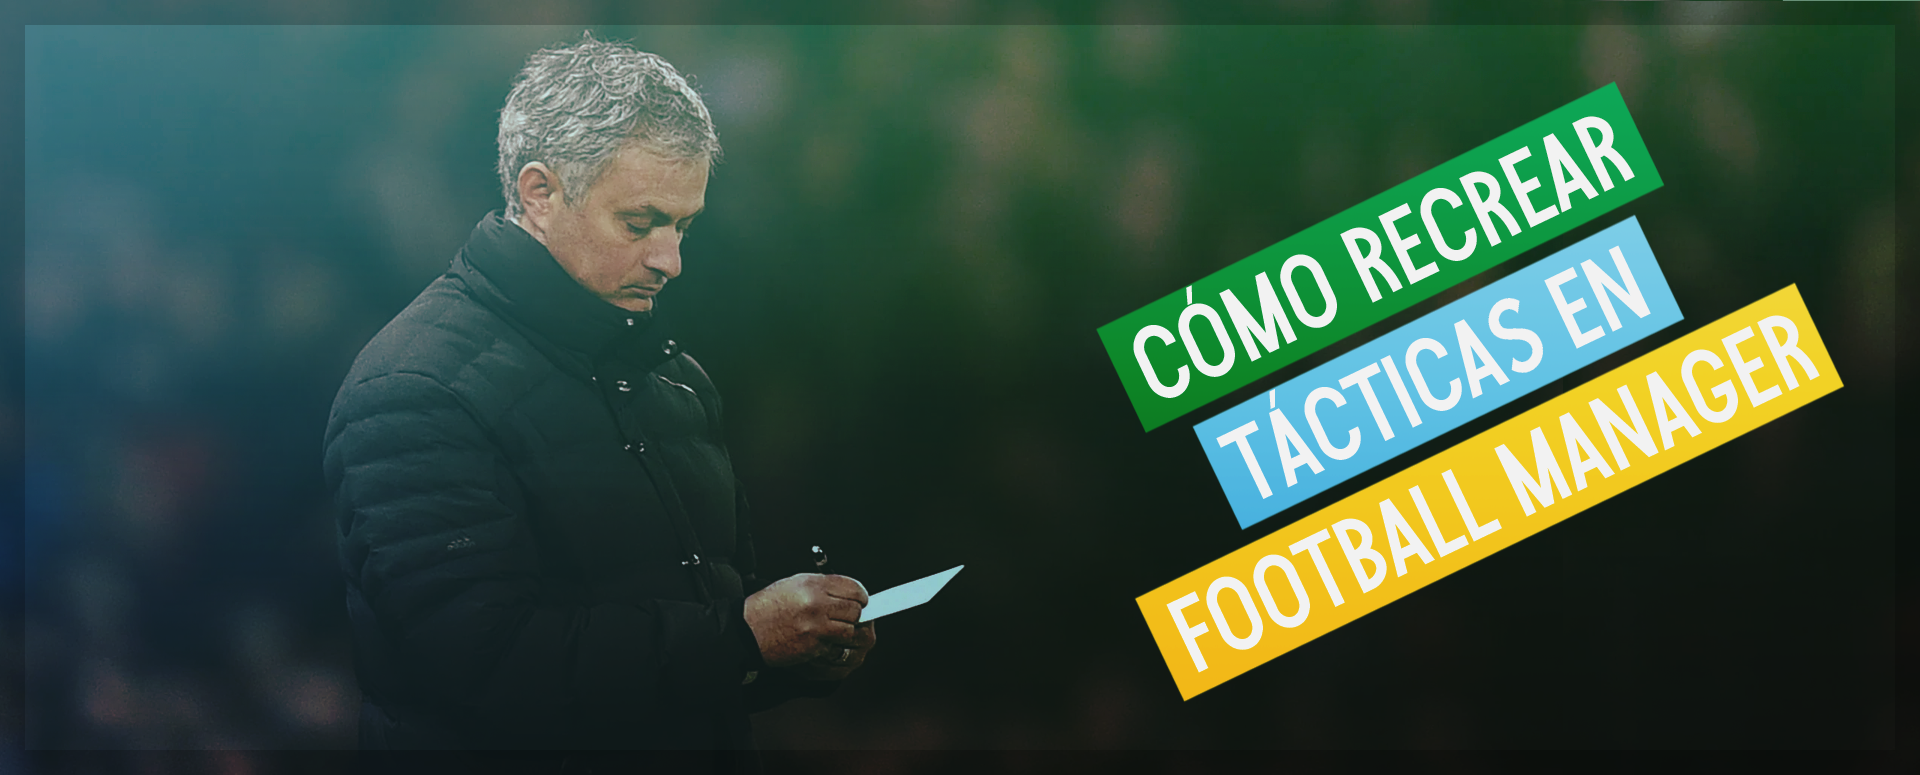 Cómo recrear tácticas en Football Manager